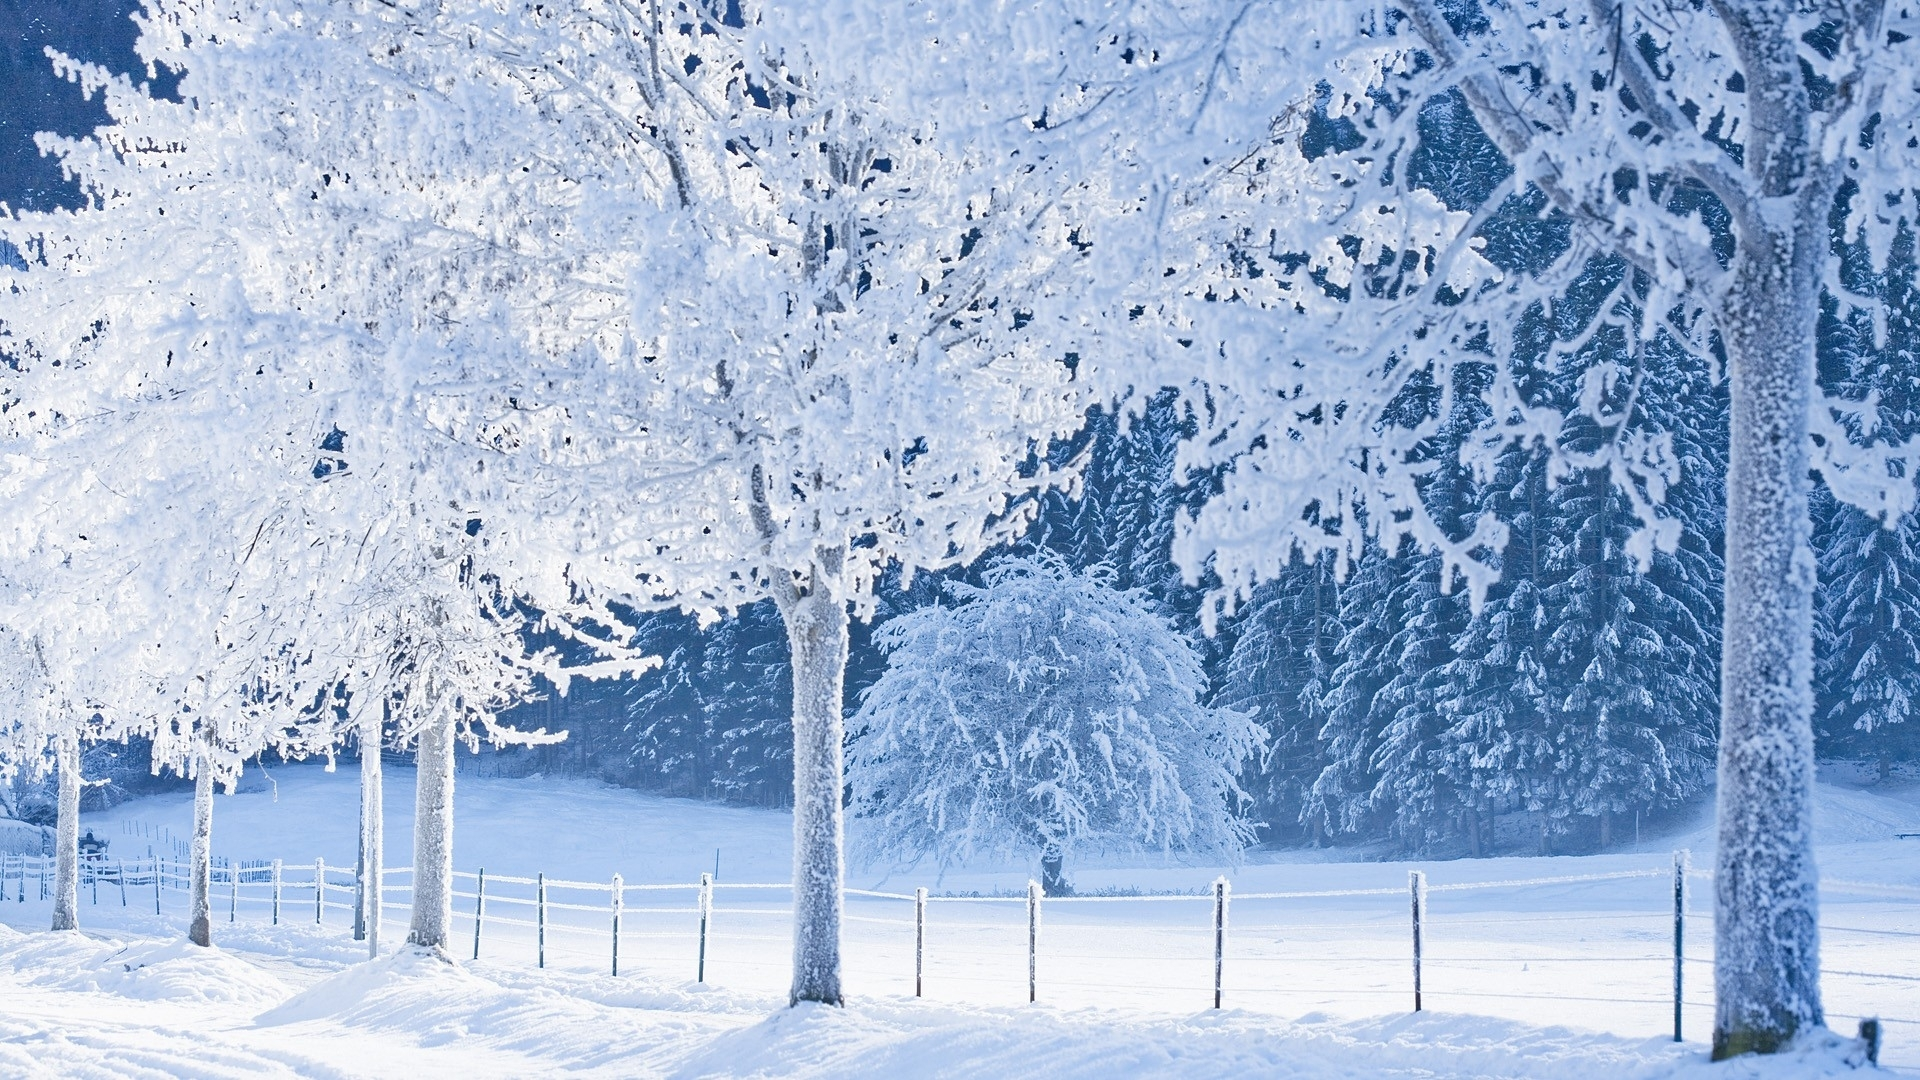 Nature Snow White World Germany Bavaria Winter Wallpaper 1920x1080 123742 Wallpaperup